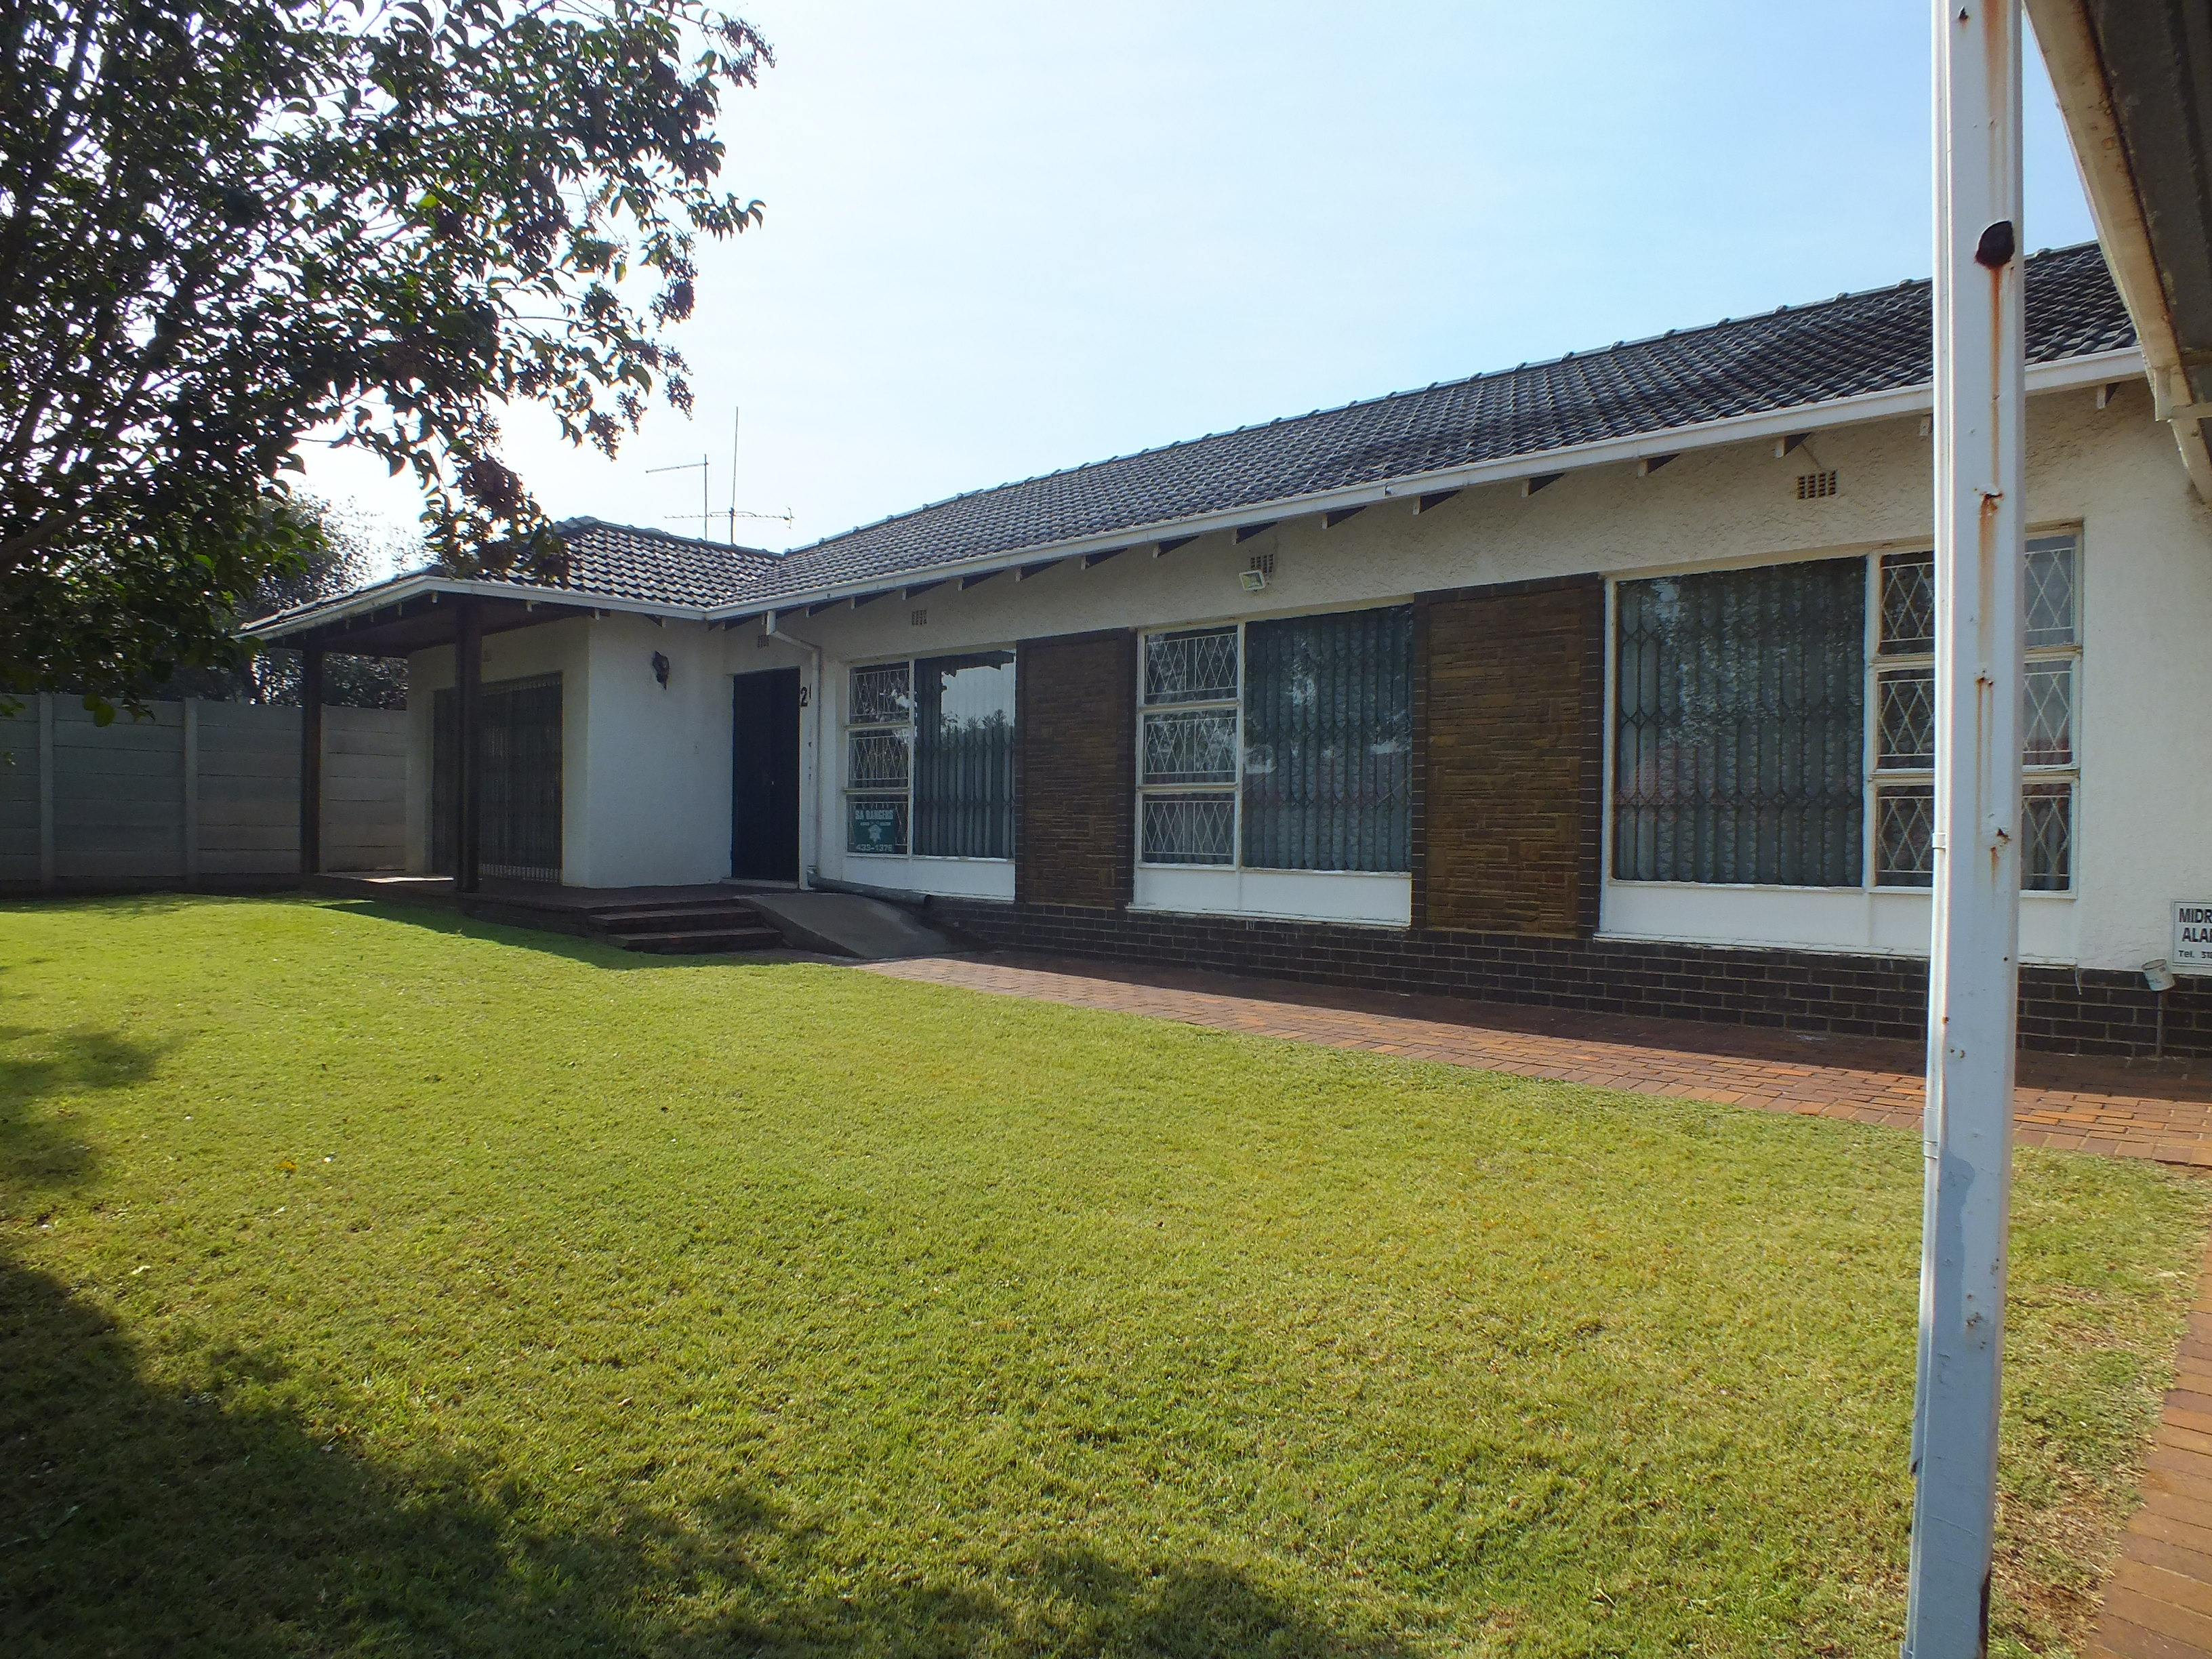 (HOT OFFER) 3 BED HOUSE - RIDGE WAY, JHB